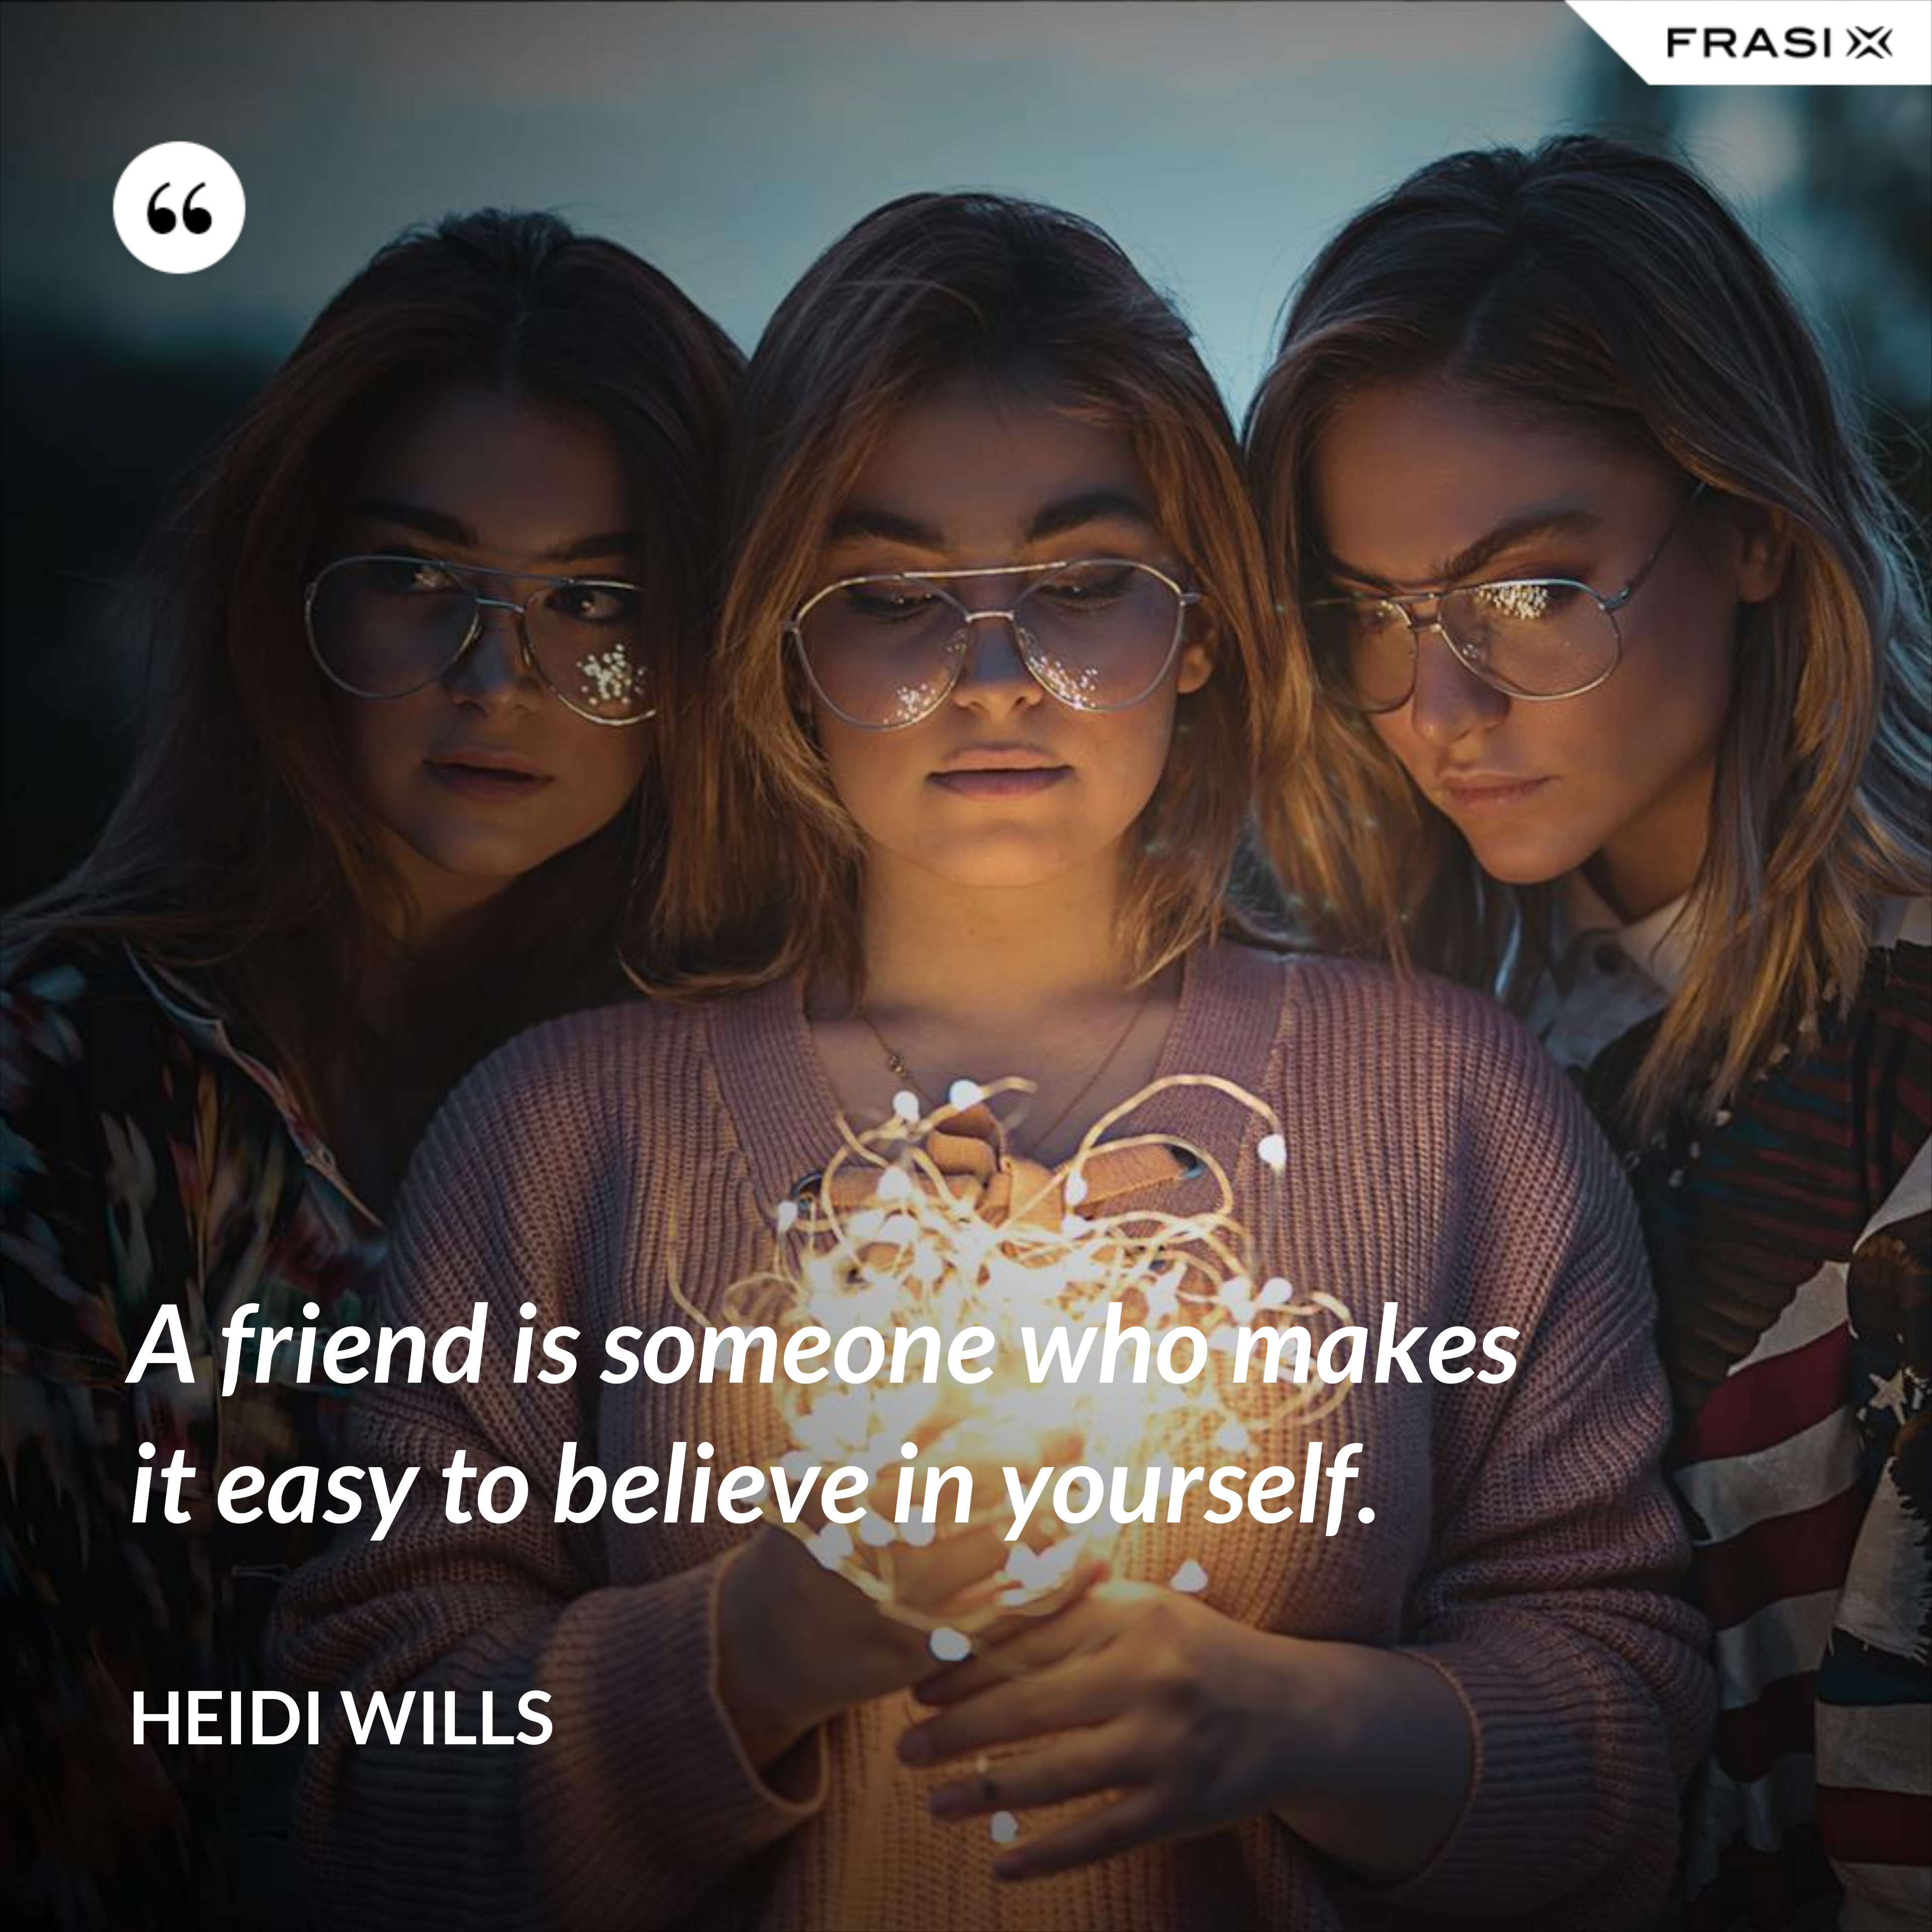 A friend is someone who makes it easy to believe in yourself. - Heidi Wills